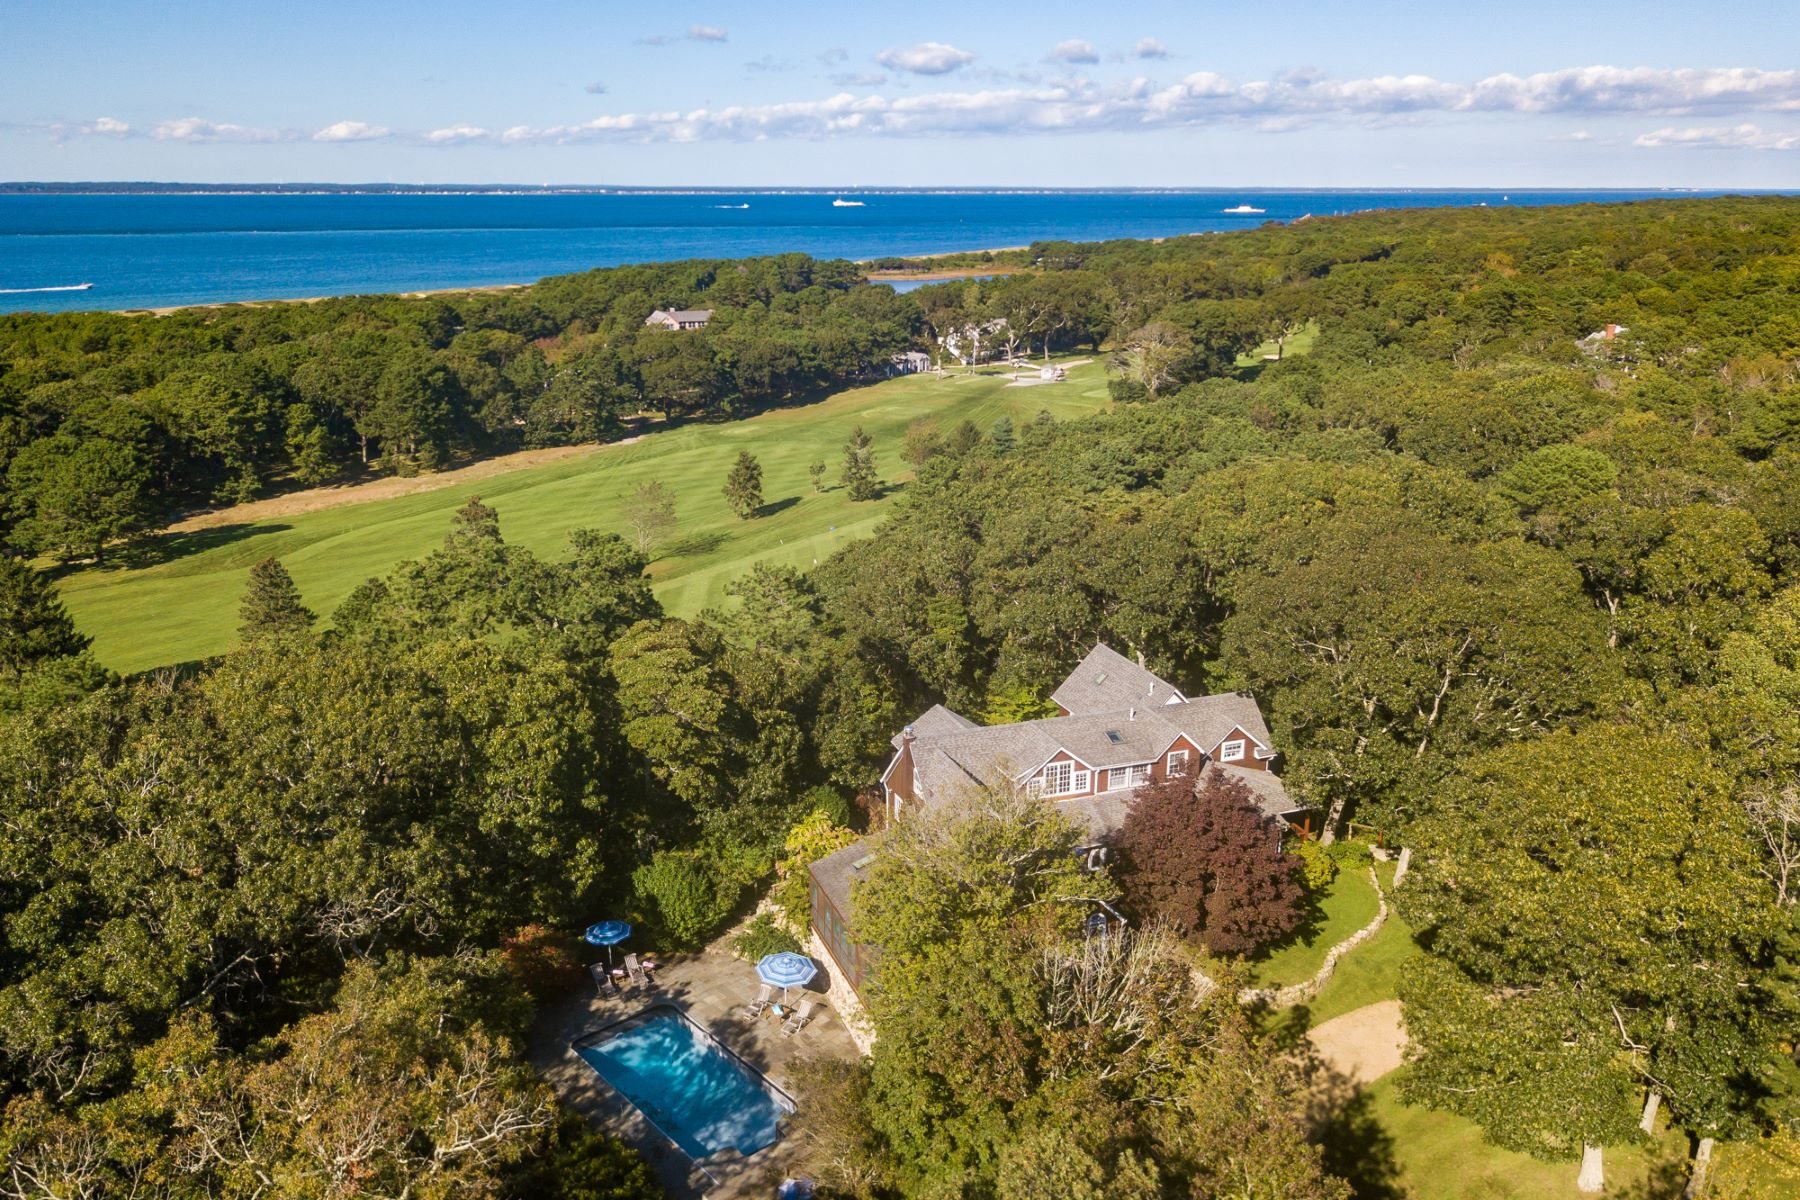 Maison unifamiliale pour l Vente à Private Estate in Mink Meadows 201 Mitchell Road, Vineyard Haven, Massachusetts, 02568 États-Unis